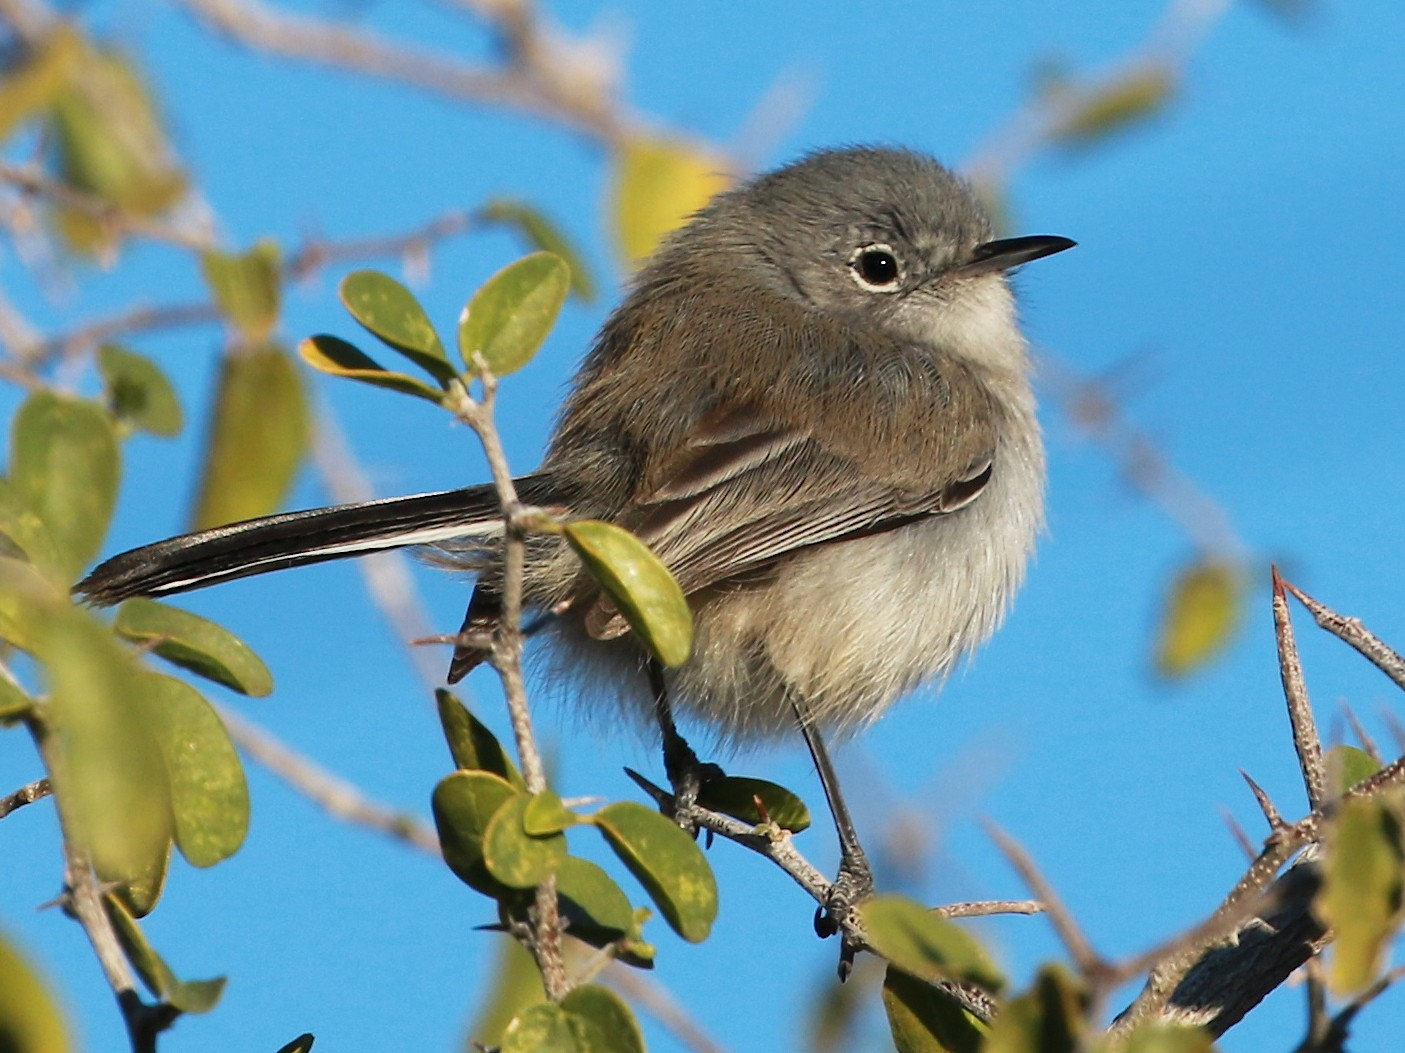 Black-tailed Gnatcatcher - David Stejskal